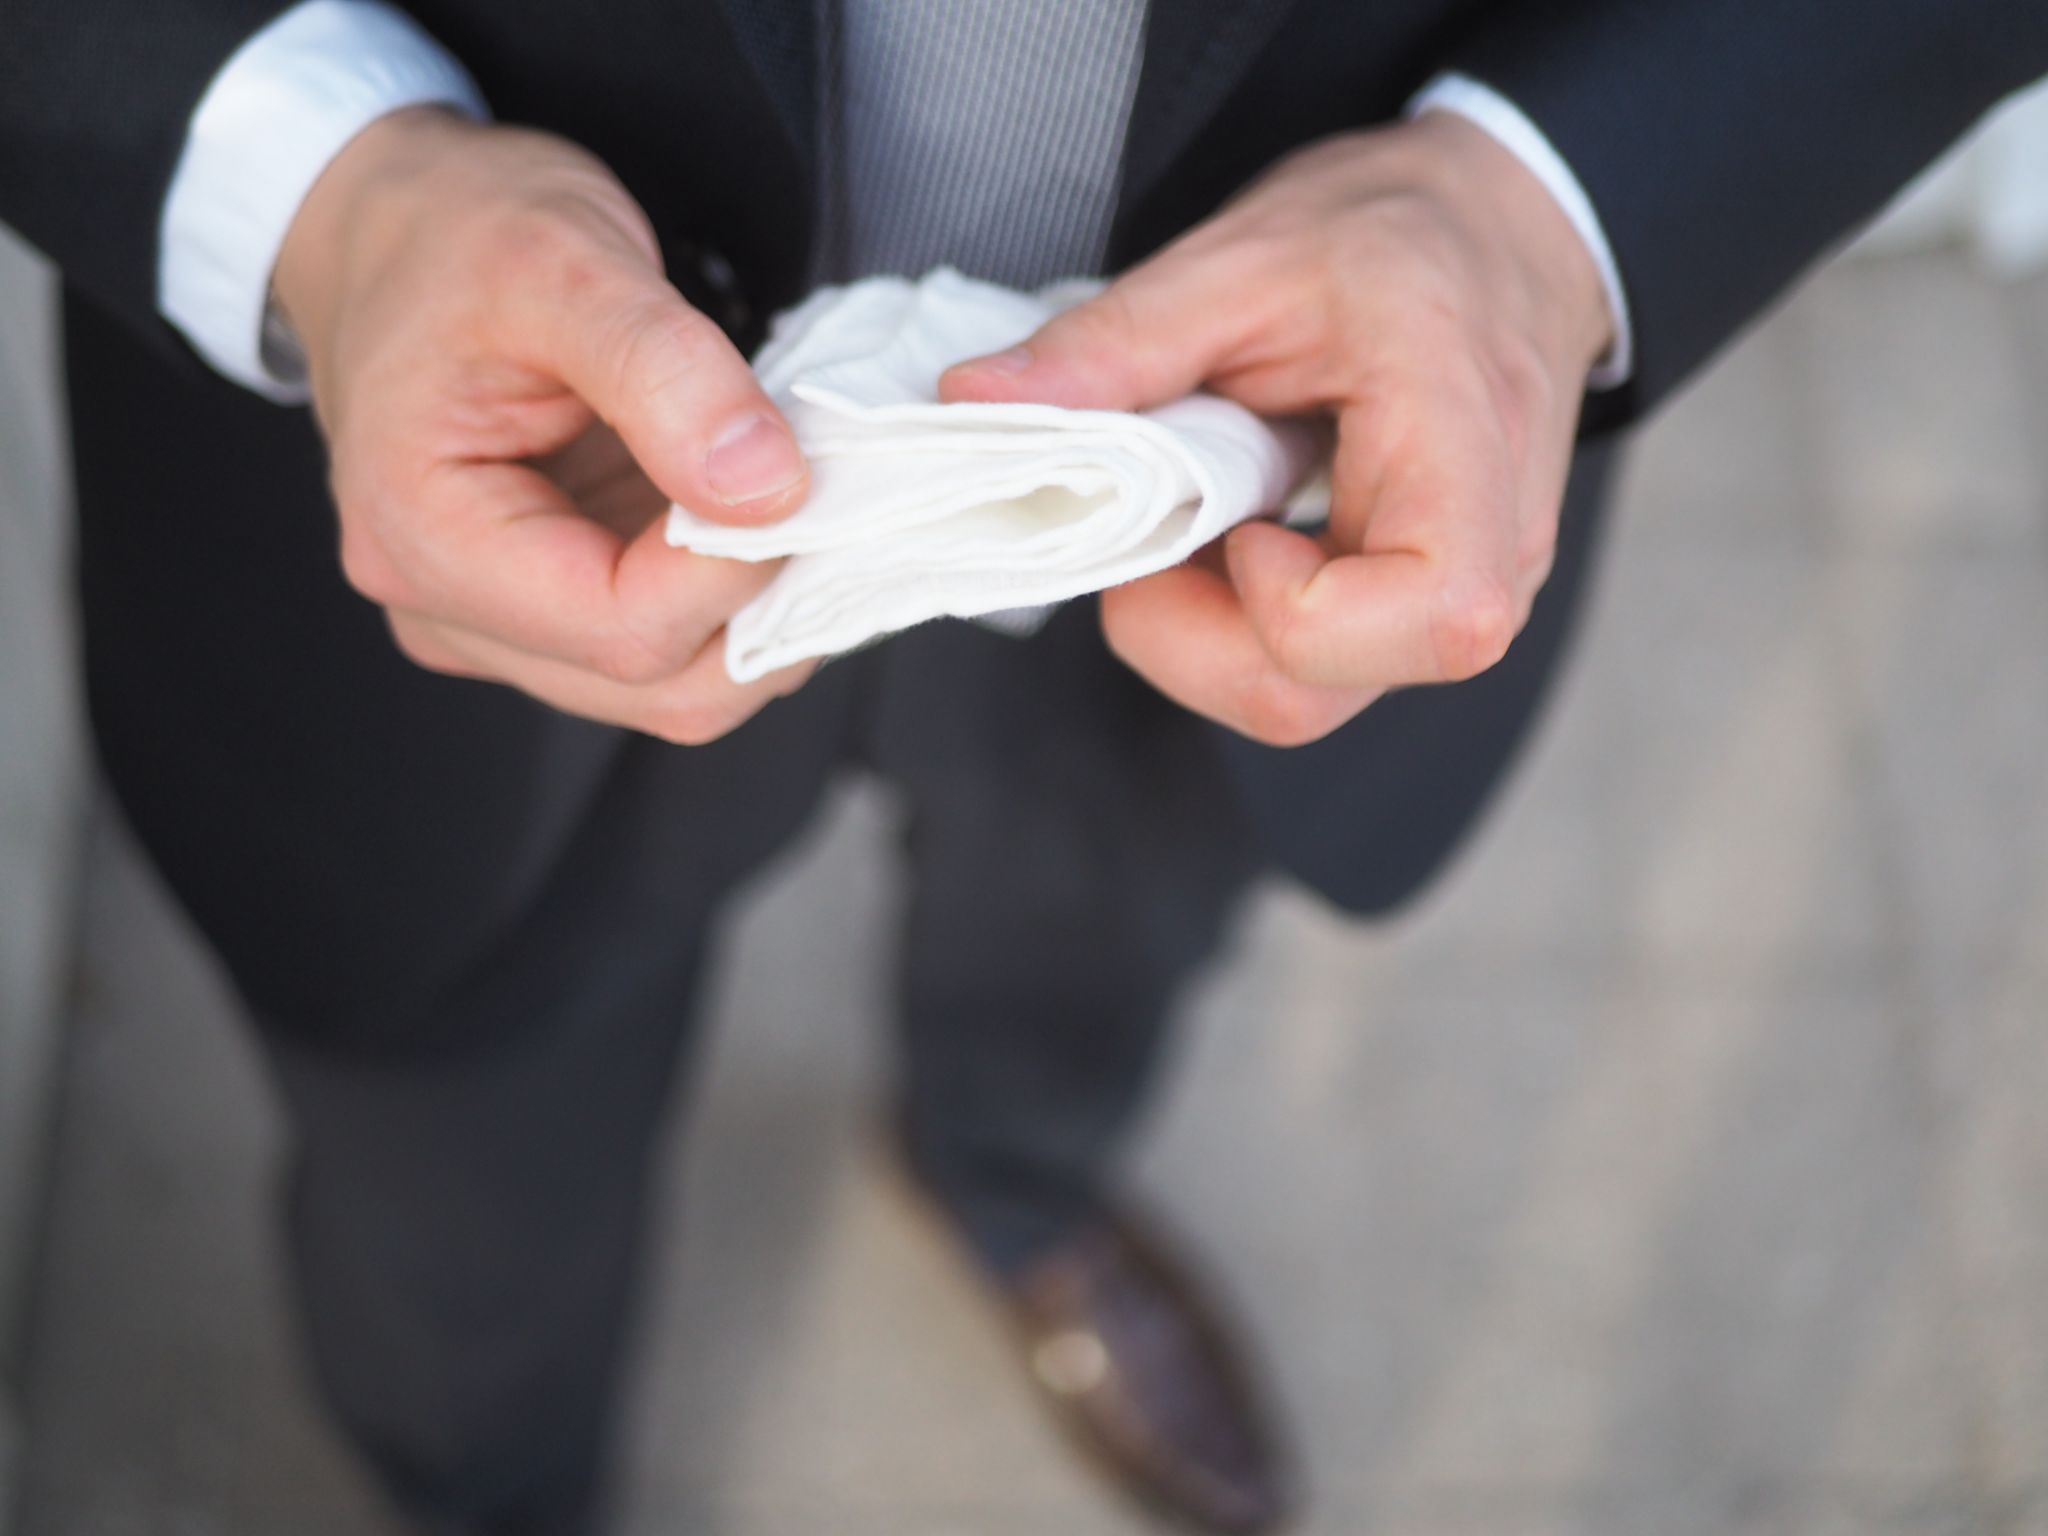 What to wear for wedding party - White linen pocket is-always a safe choice.